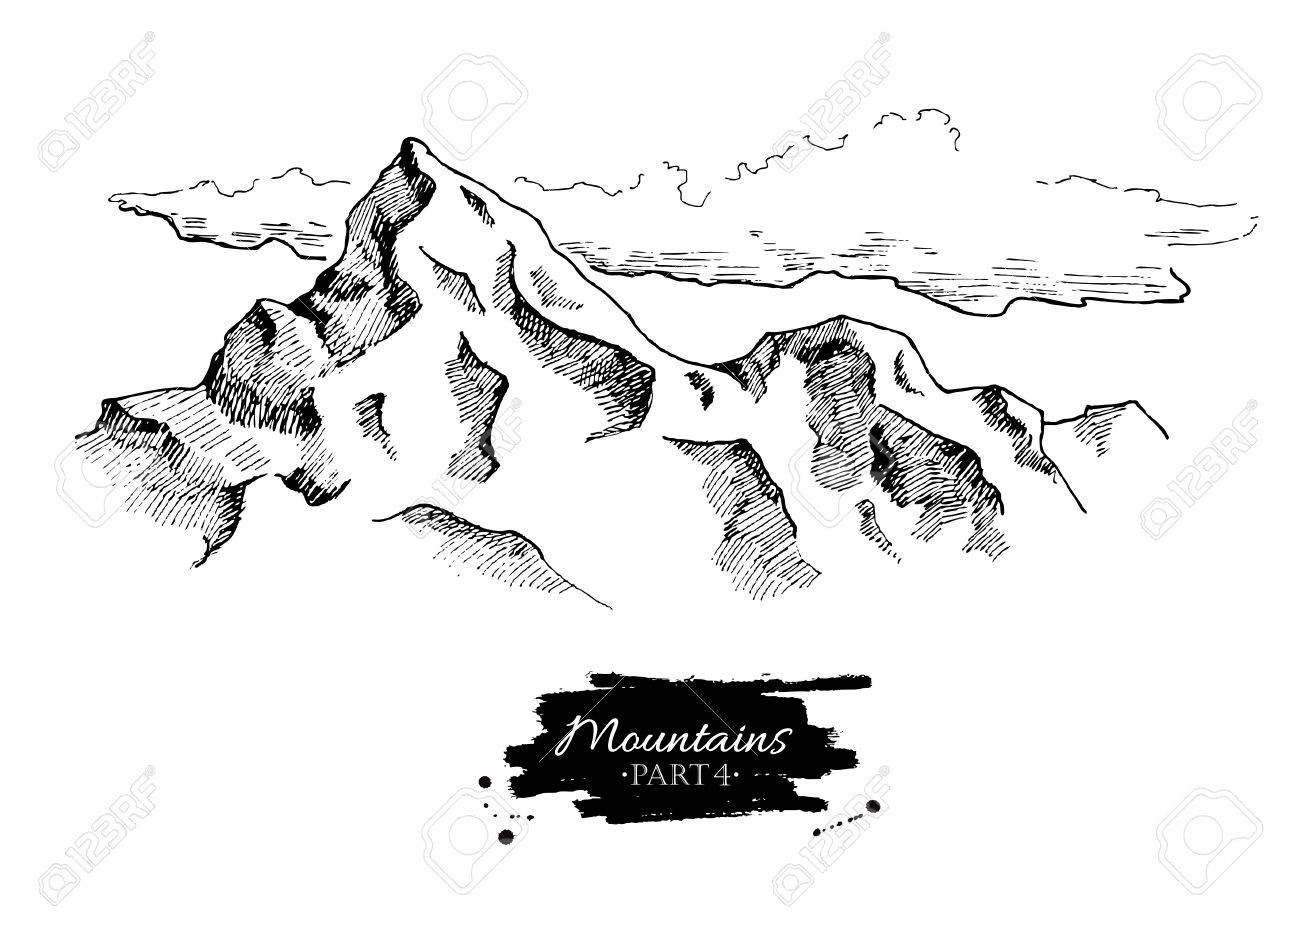 Vector mountains drawing. Hand drawn mountains illustrations. Great for travel, hiking, tourism, trekking business promoting. - 54859315